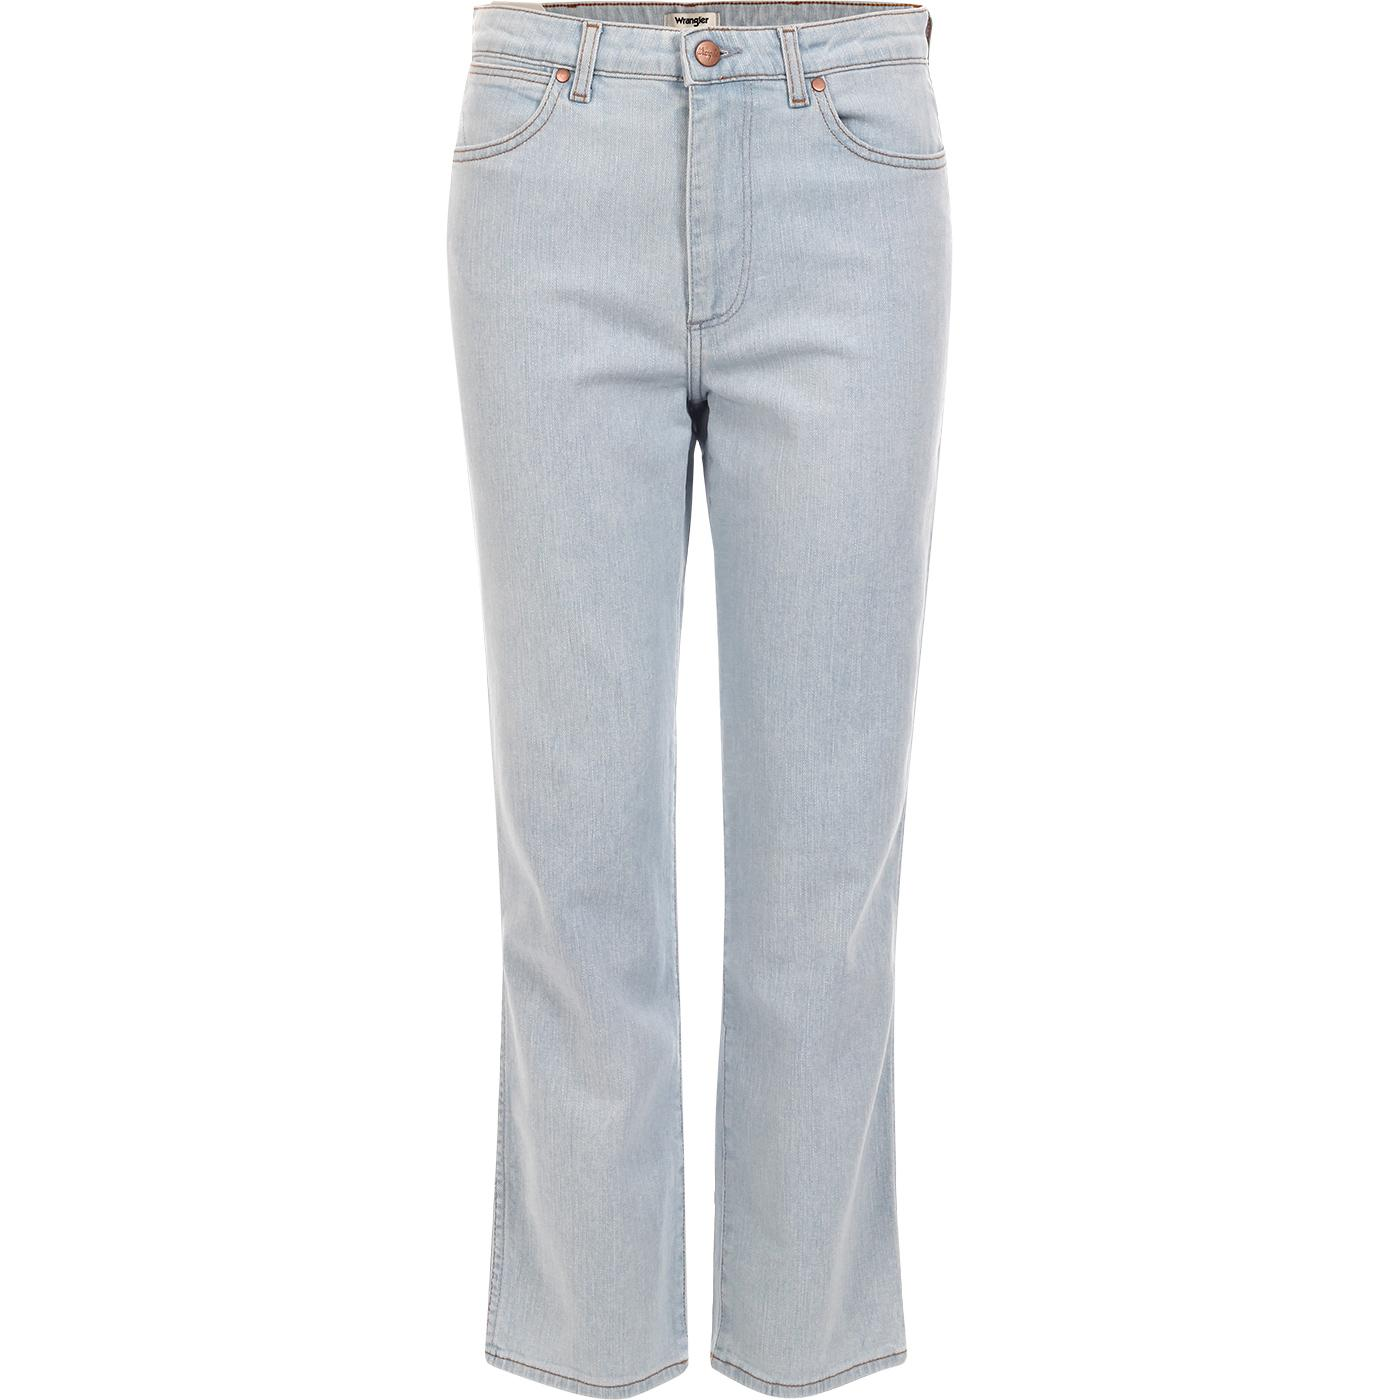 The Retro WRANGLER Straight Leg Jeans BALLAD BLUE